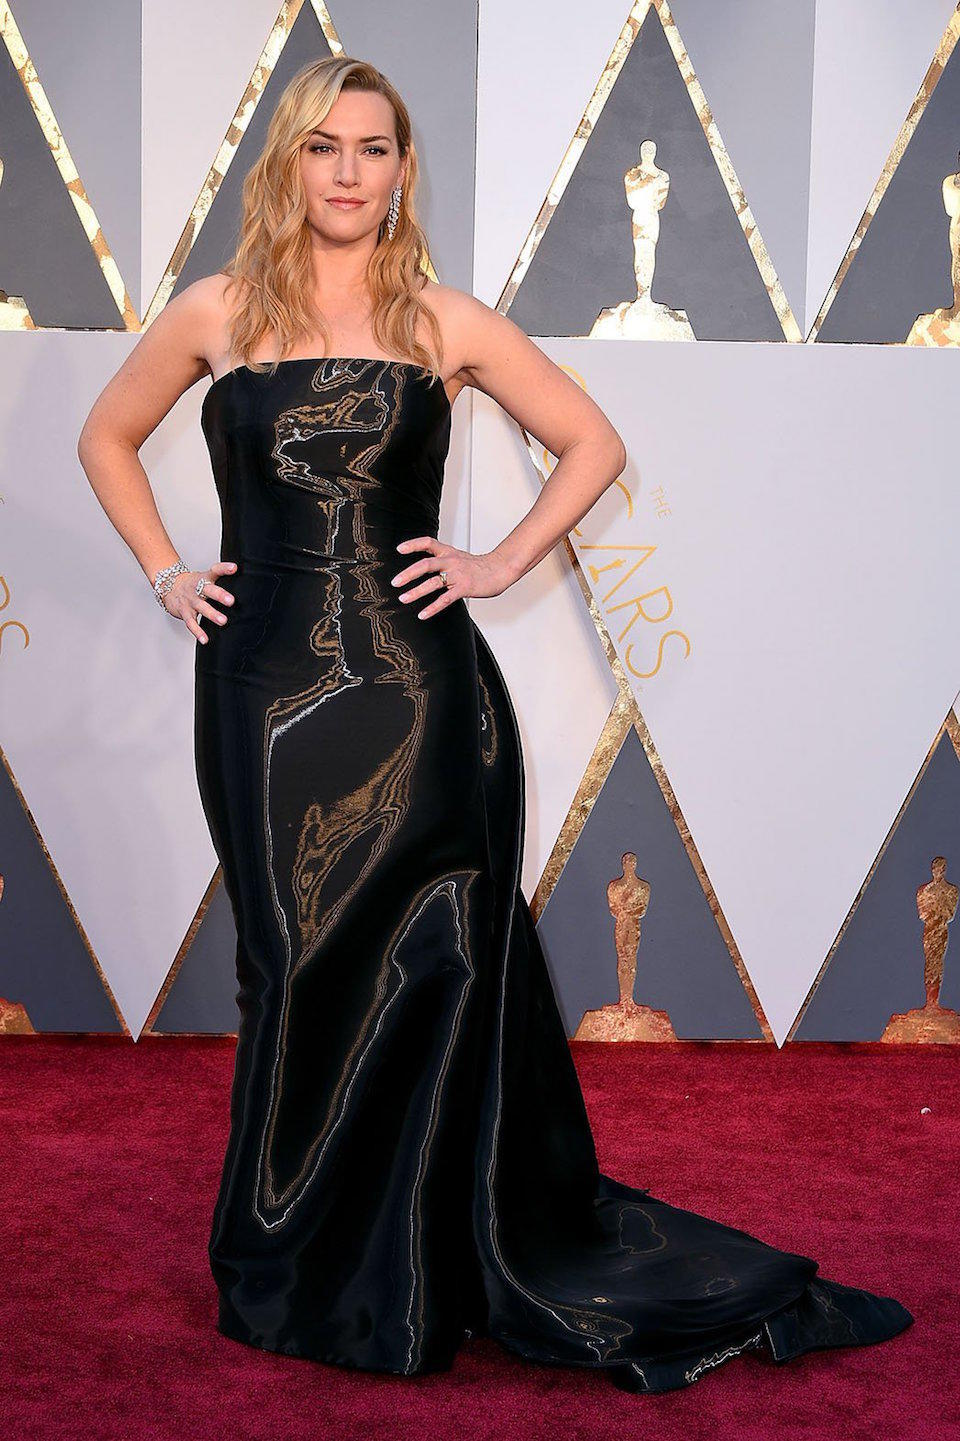 KateWinslet_88th_Annual_Academy_Awards